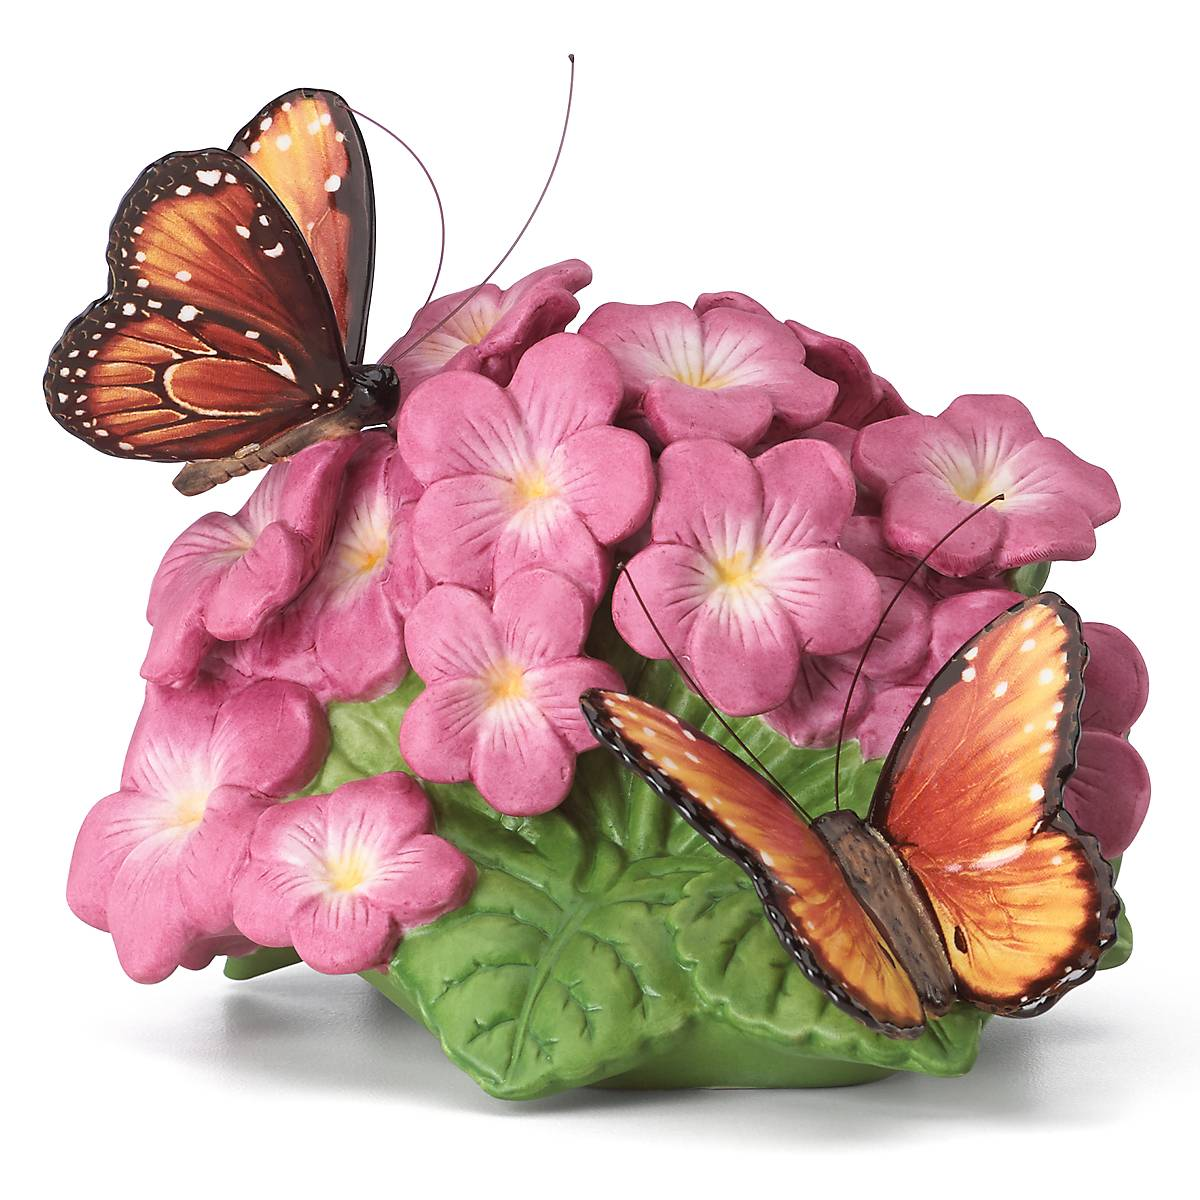 Image of Amazing Floral and Butterfly Figurine - Queen Majesty